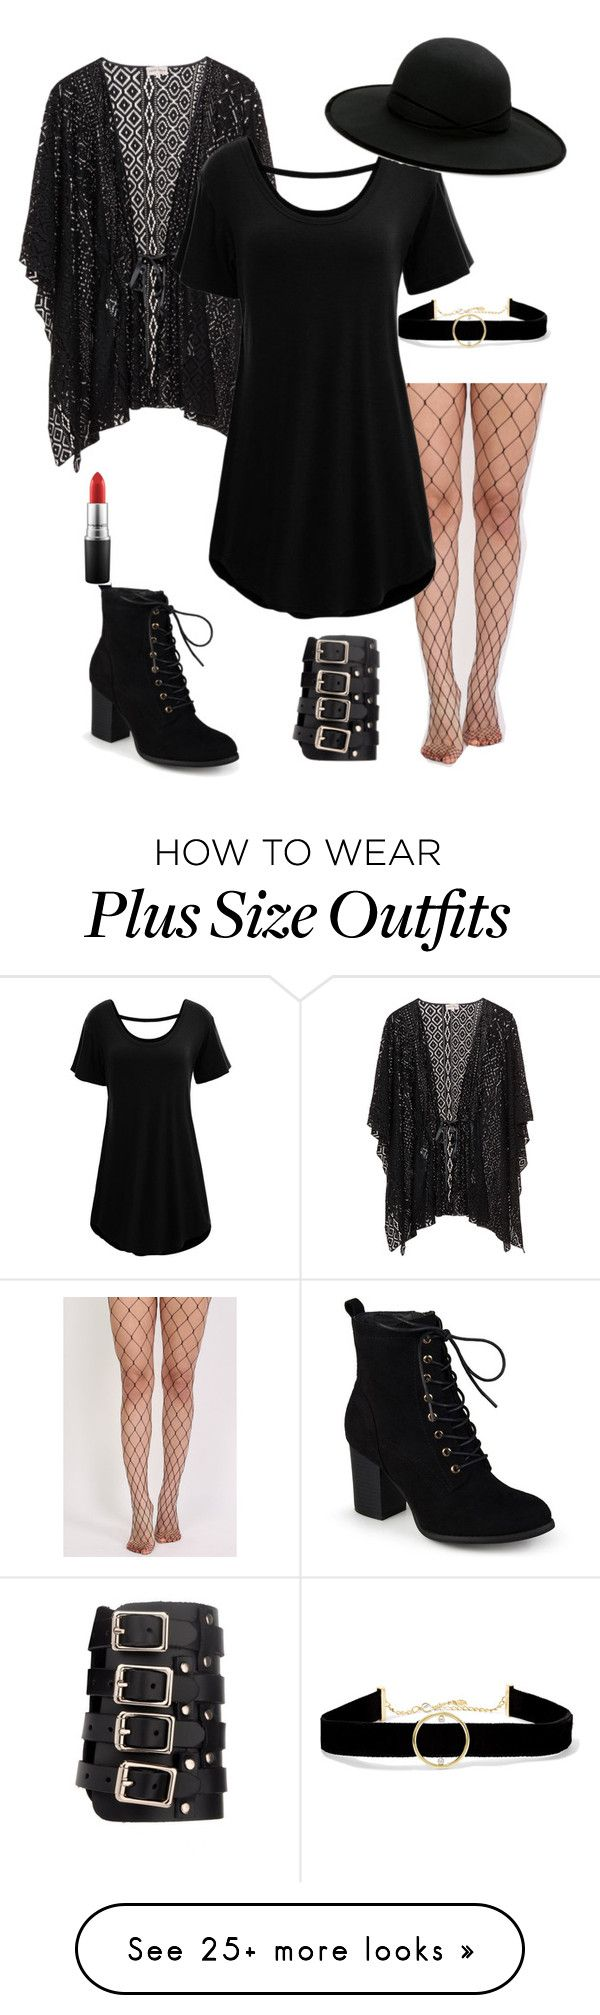 """plus sized: goth"" by violateharmon on Polyvore featuring Pilot, WithChic, Journee Collection, Betmar, Anissa Kermiche and MAC Cosmetics"